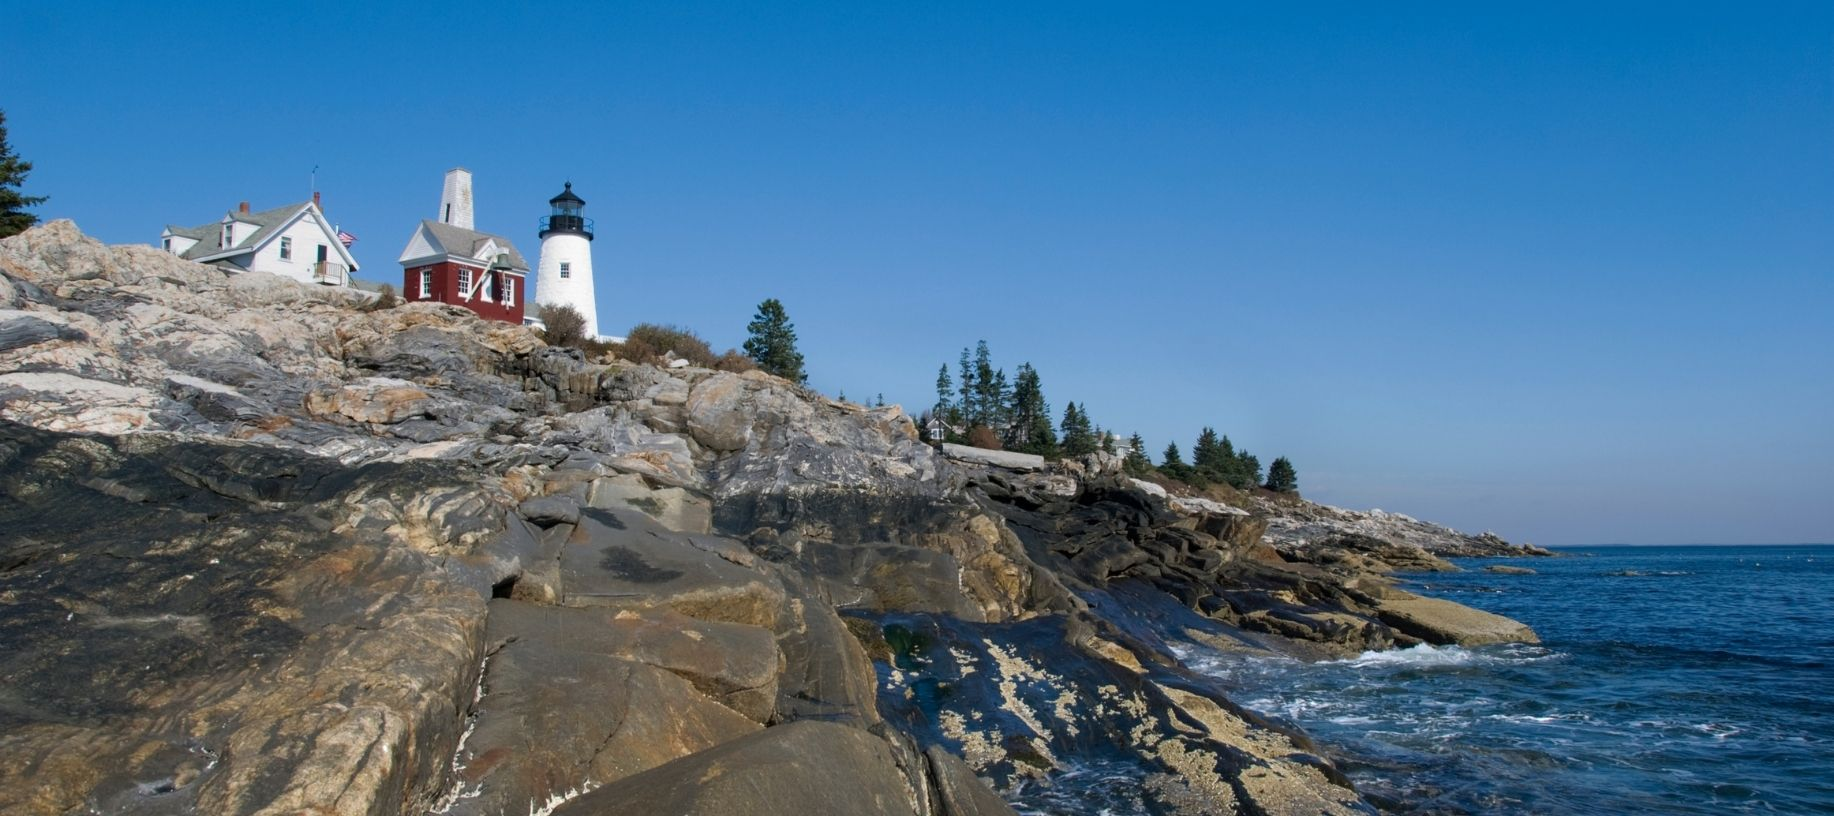 Rocky boulders lining the coast of Maine